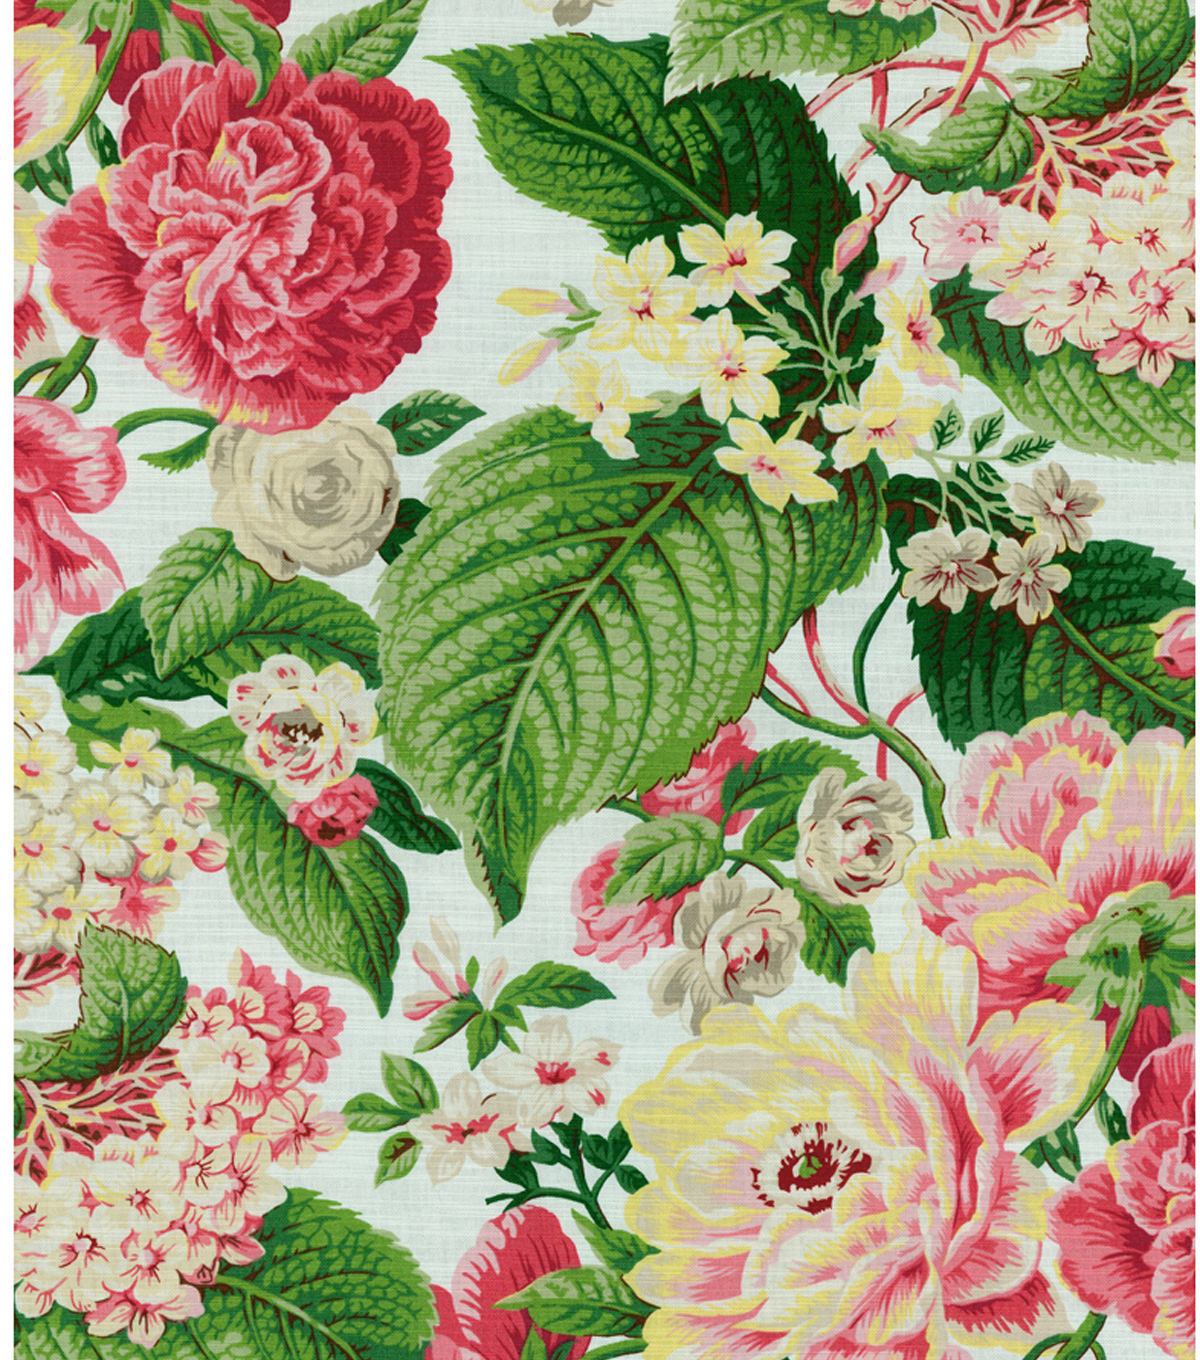 Waverly Lightweight Decor Fabric 54u0022 Floral Flourish Spring